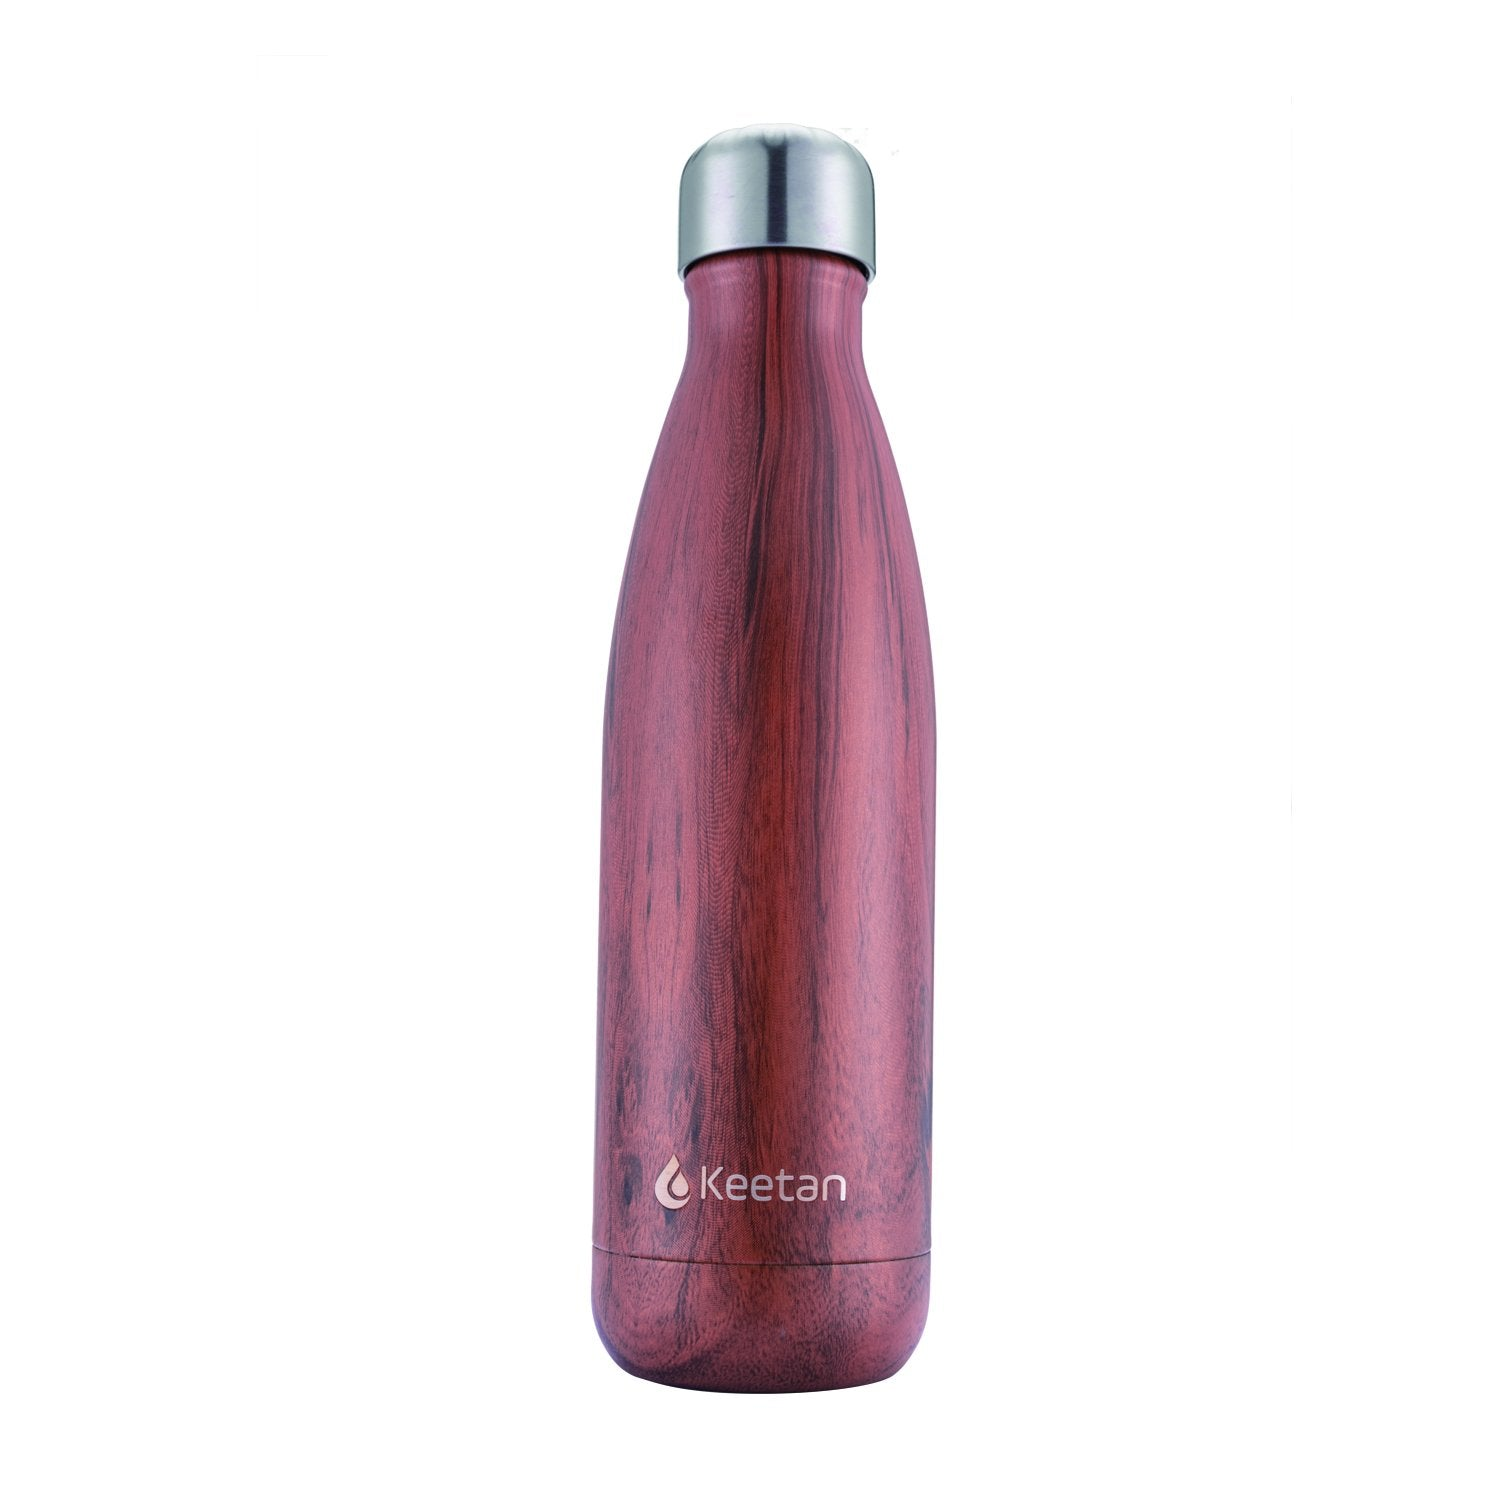 Keetan AIR Max Water Bottle-Wood Wave - Customized